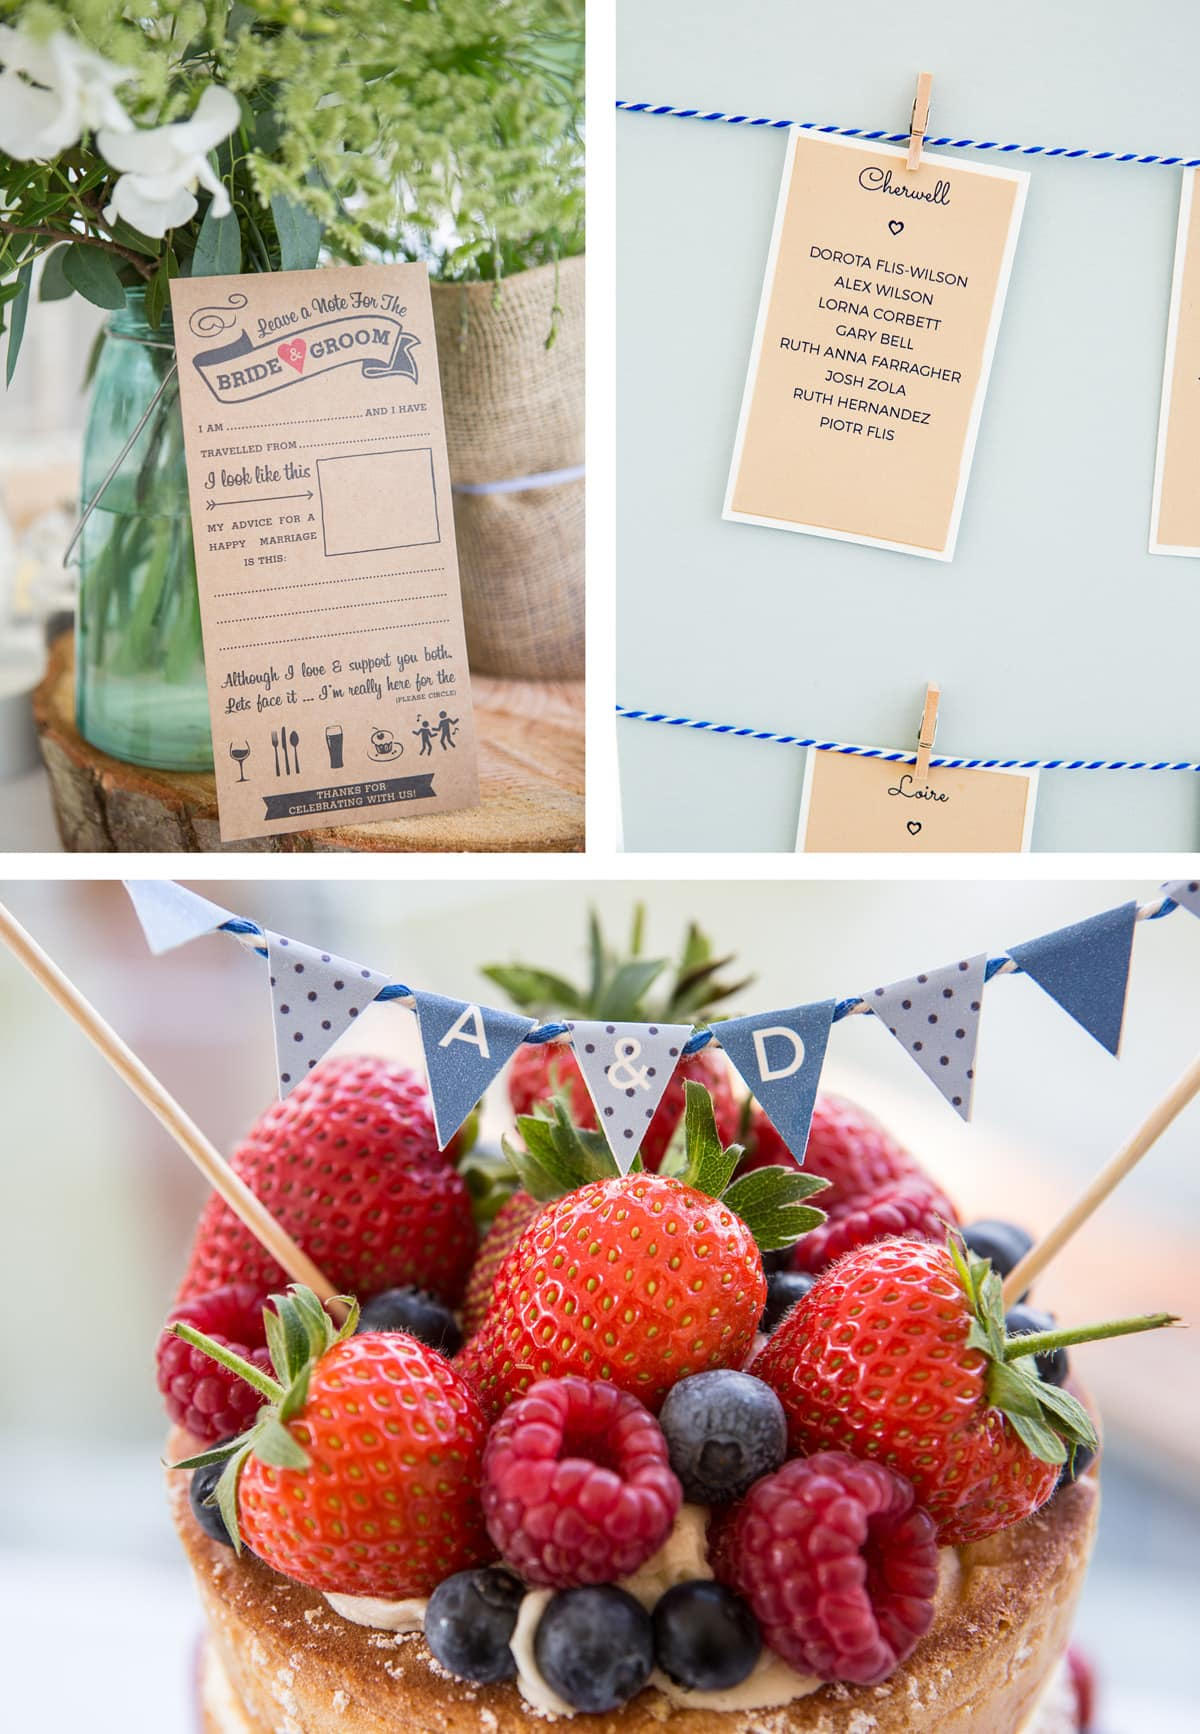 Collage of images from left: A note from the bride and groom for guests to fill in; a close up from the seating plan; summer fruits on top of the cake